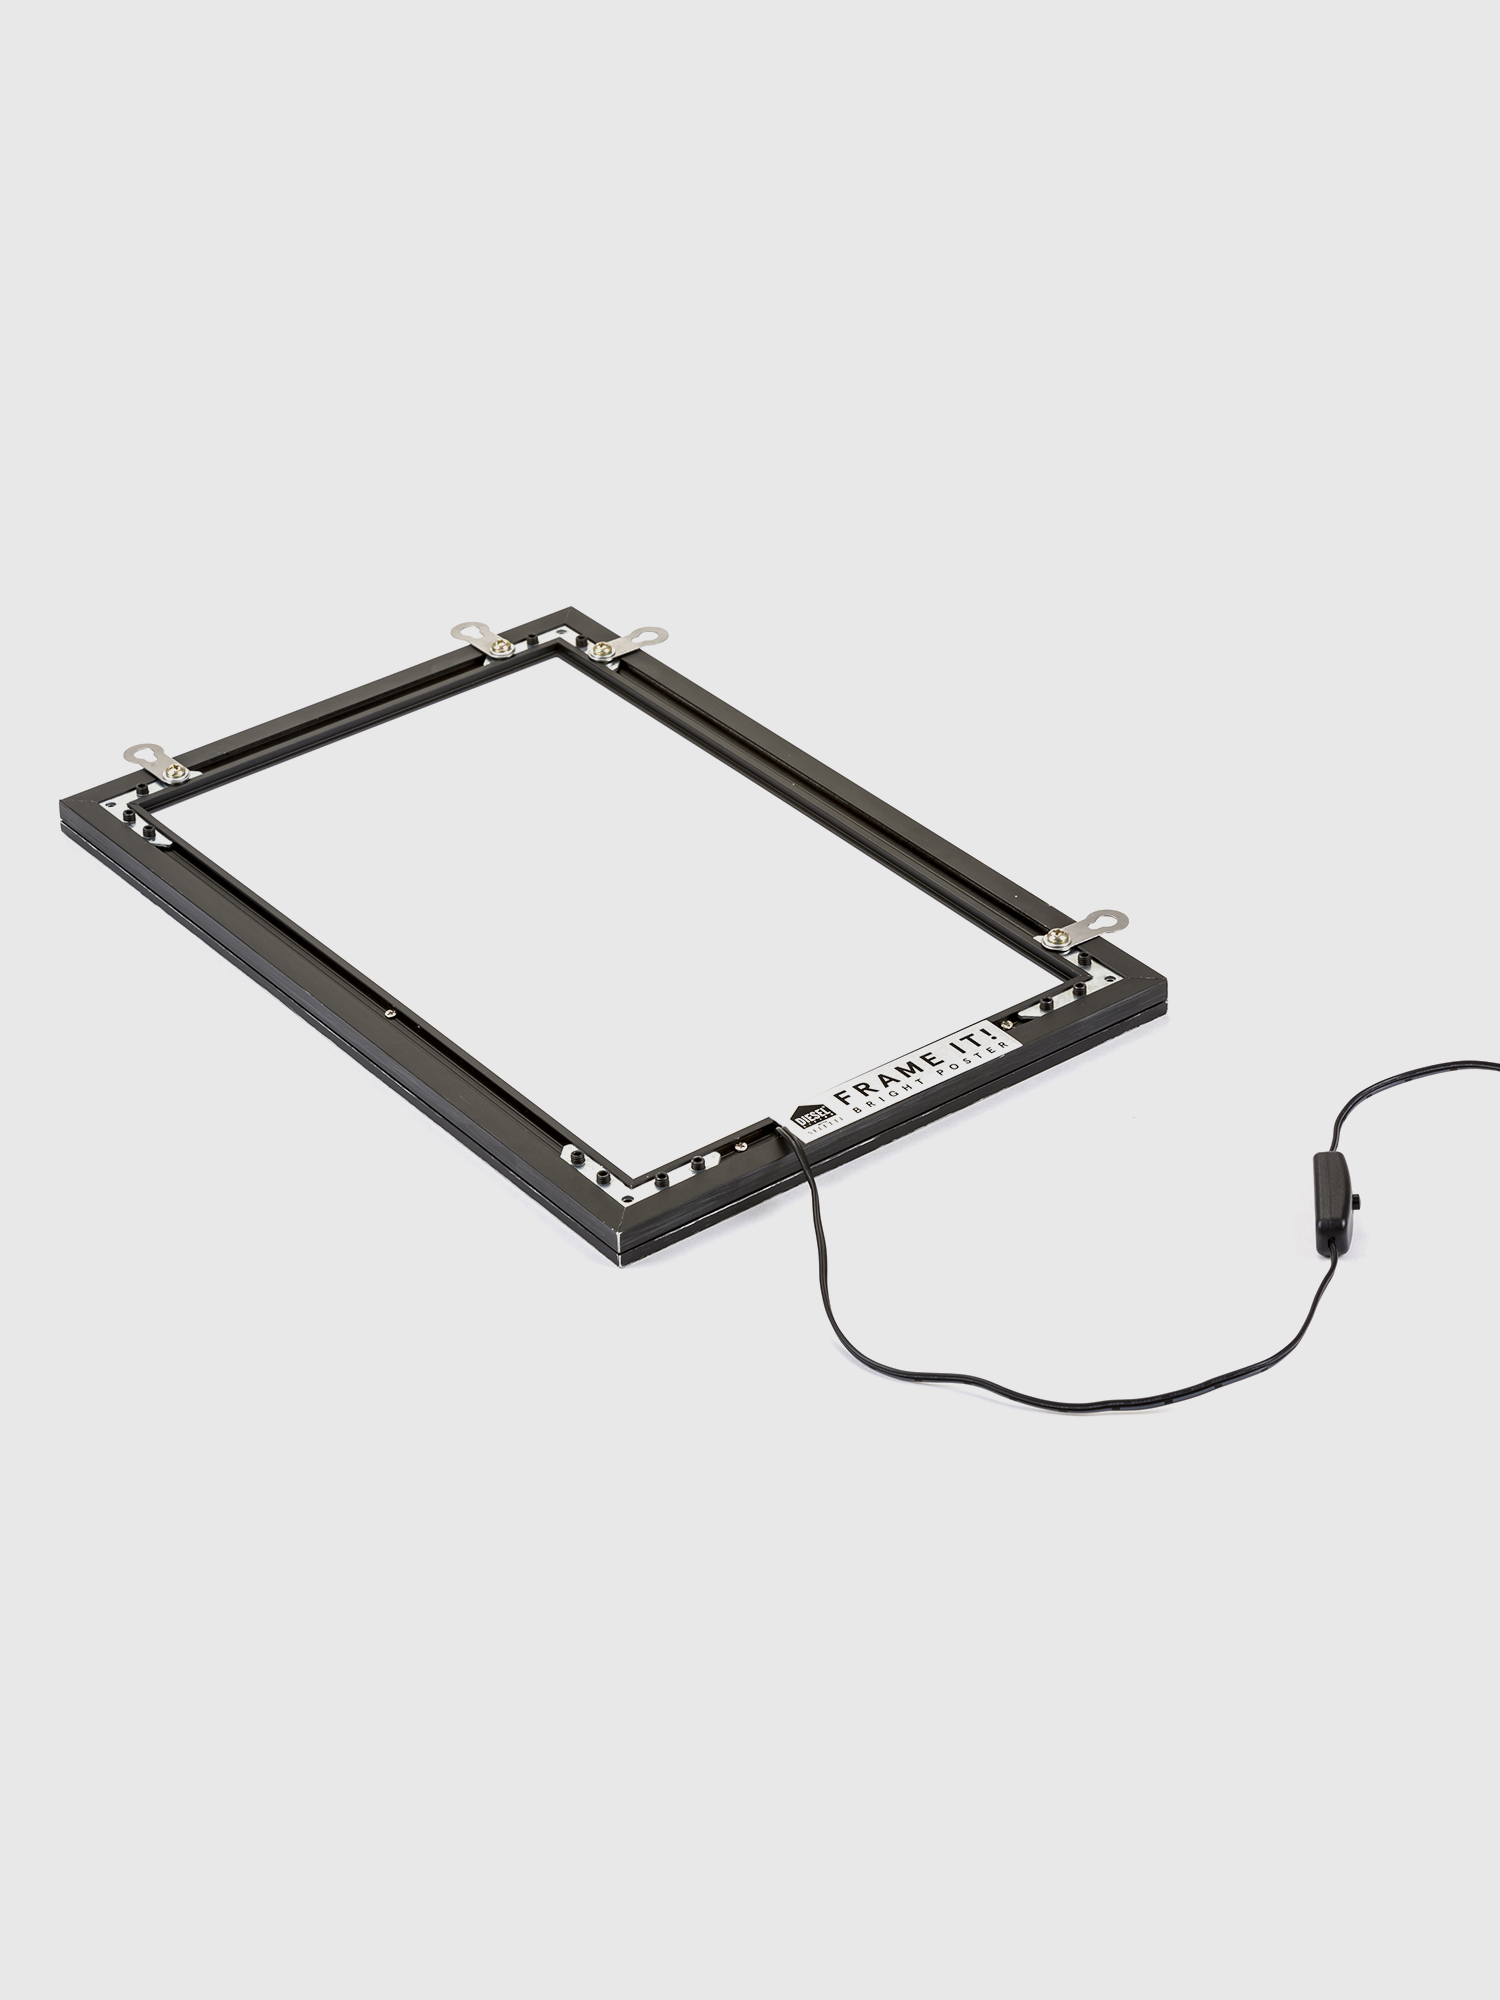 Diesel - 11000 FRAME IT!,  - Home Accessories - Image 2